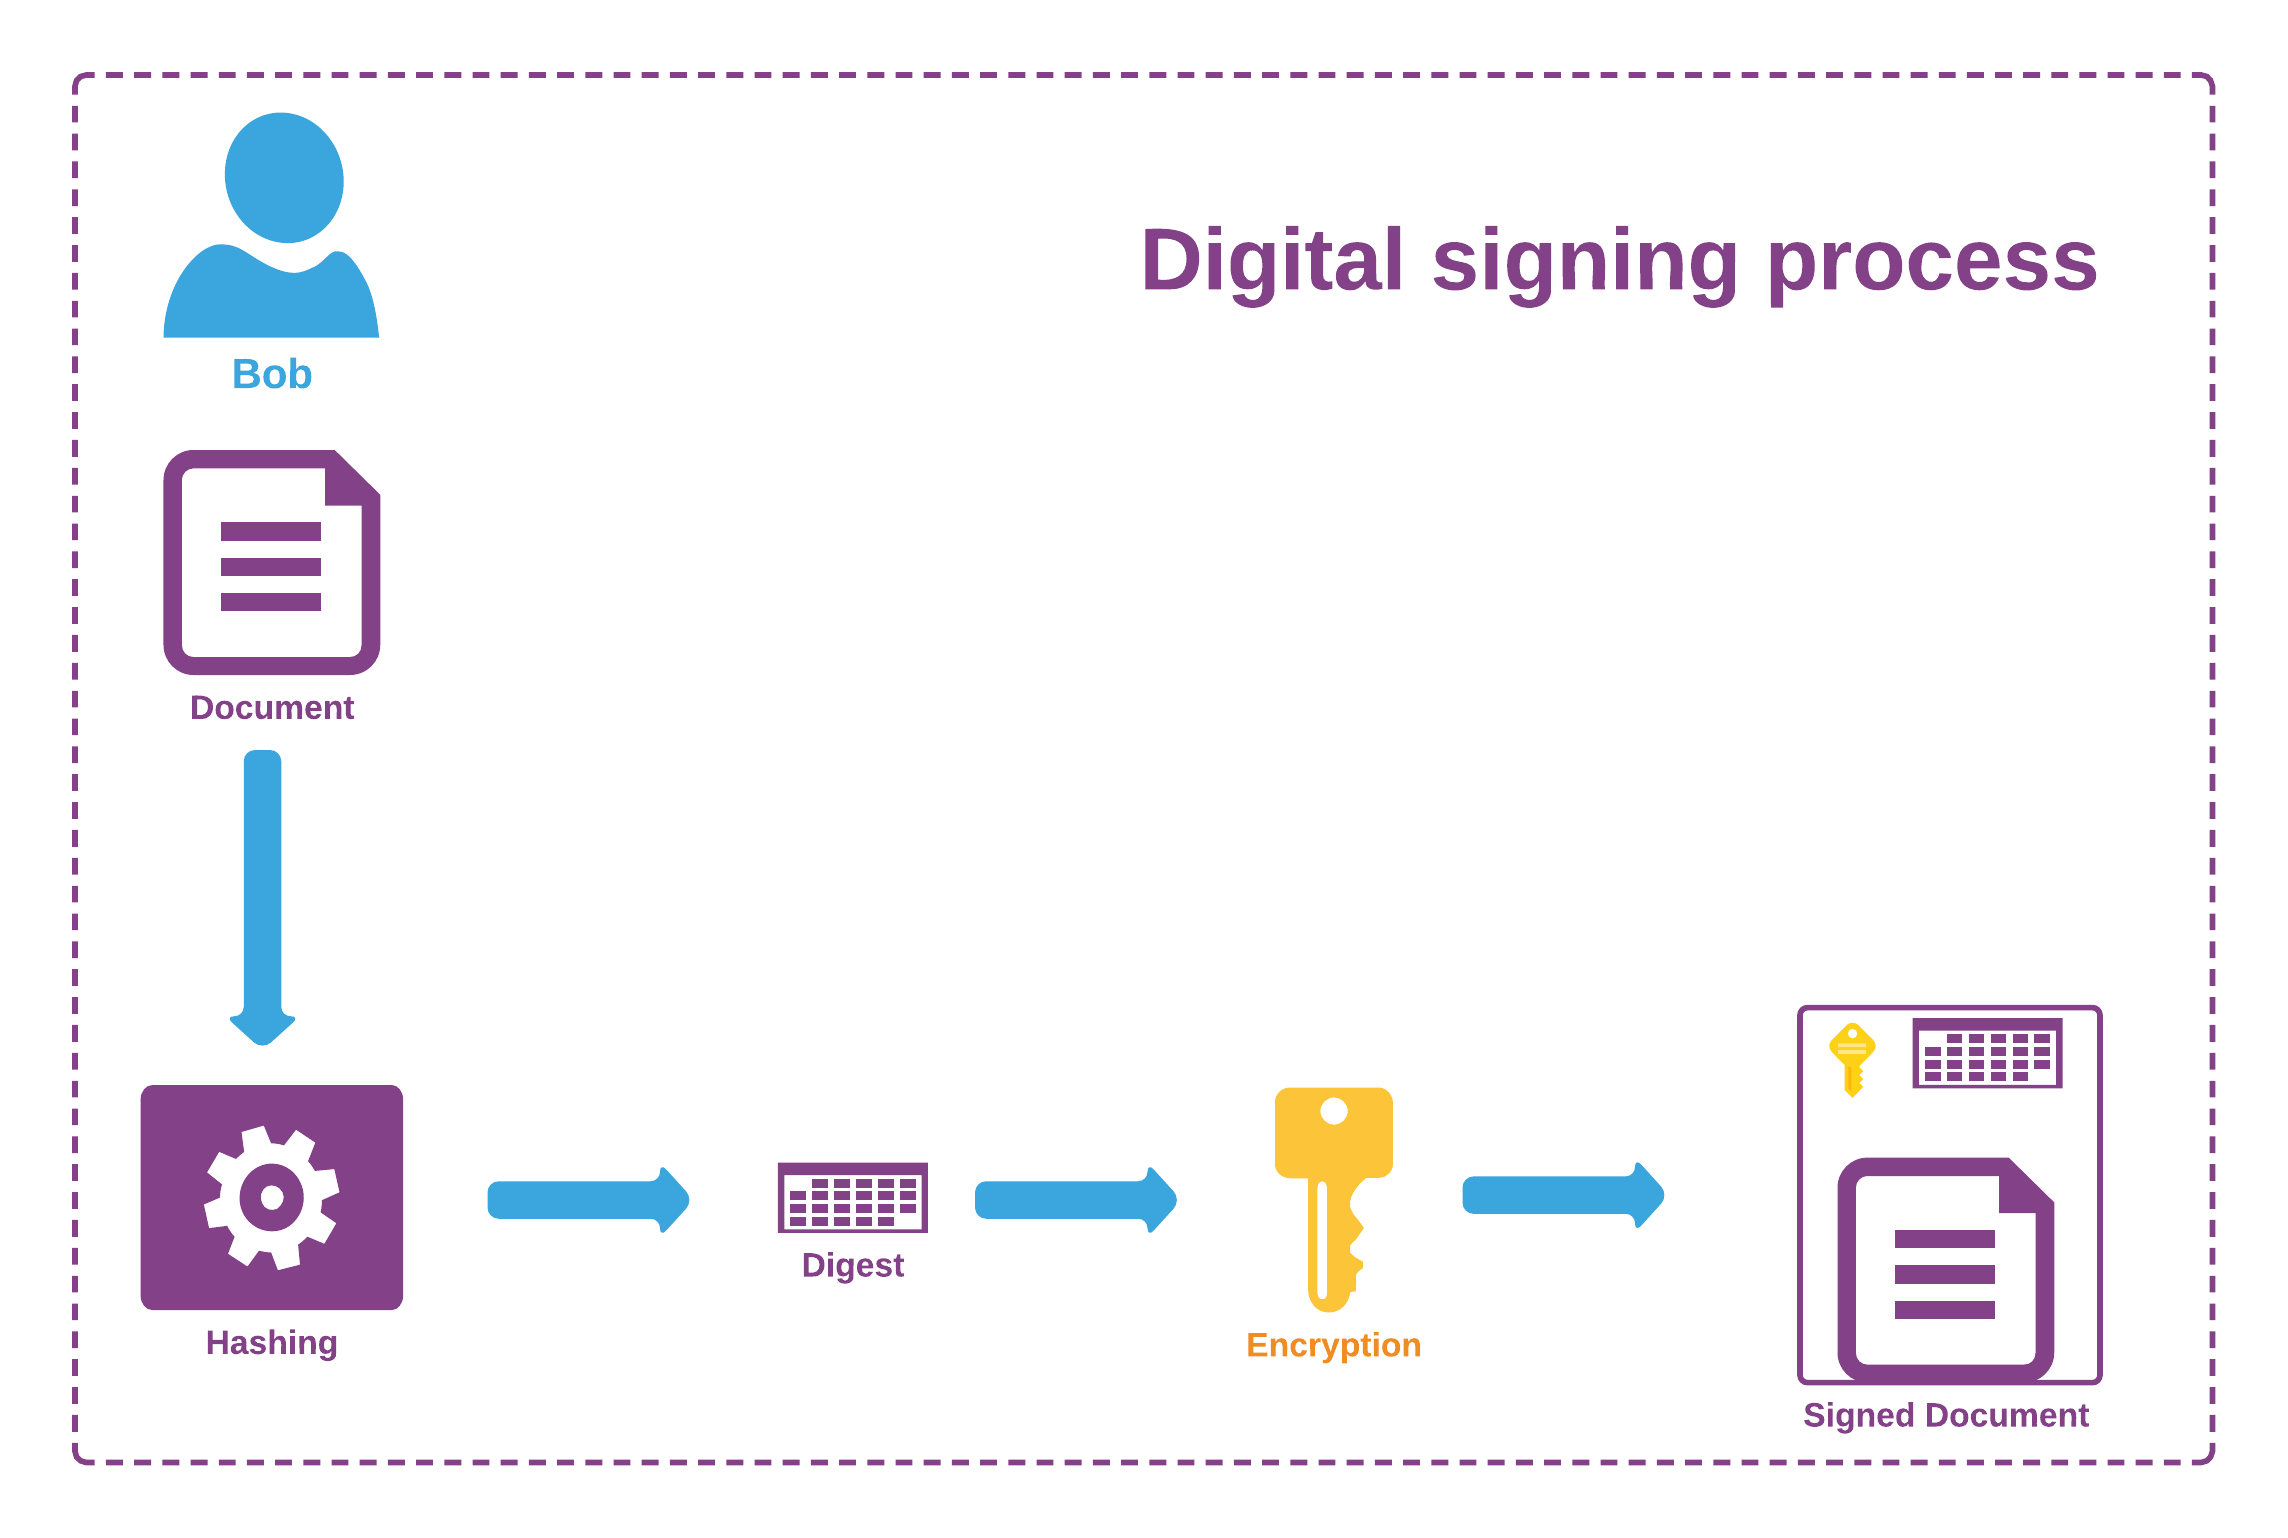 Document digital signing process using a private/public key pair